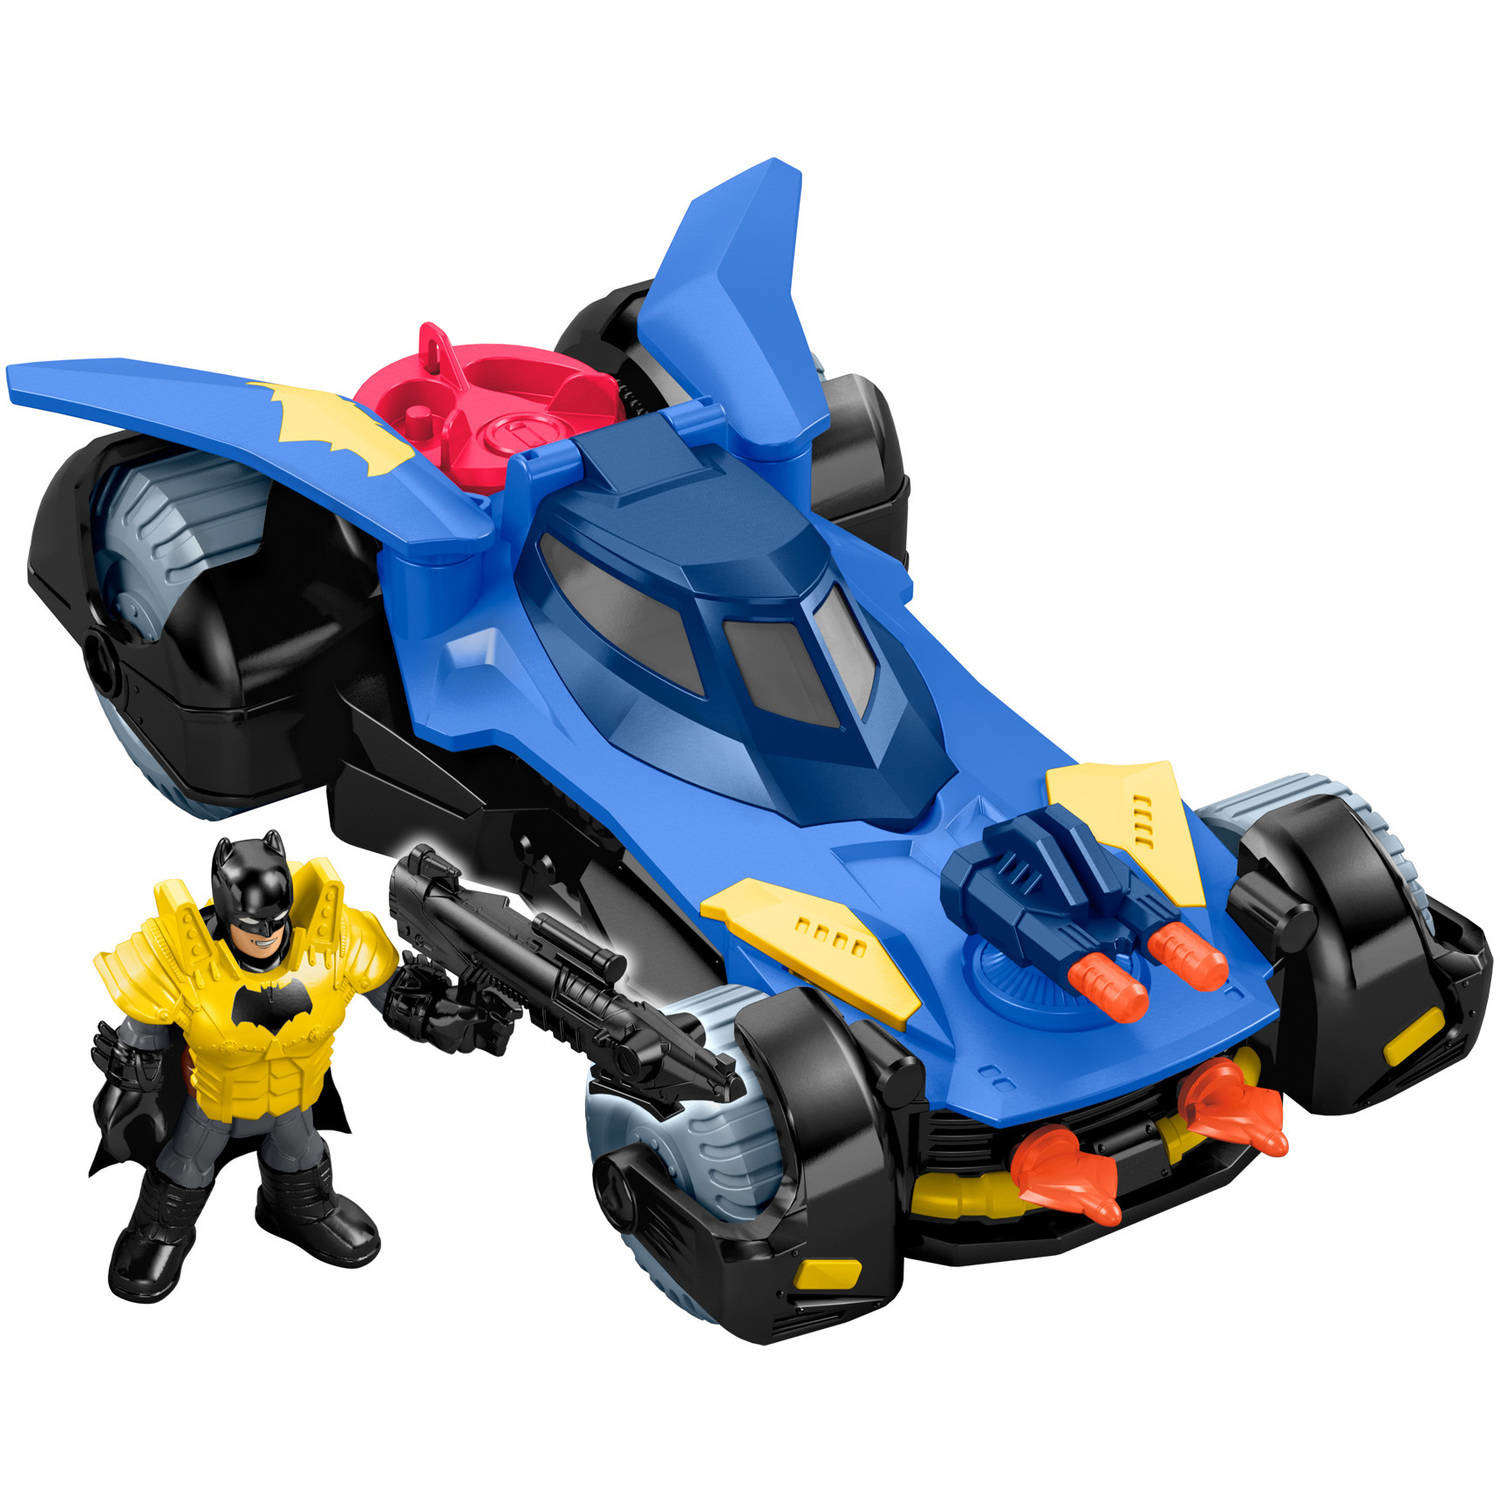 Imaginext DC Super Friends Deluxe Batmobile Vehicle with Batman Figure